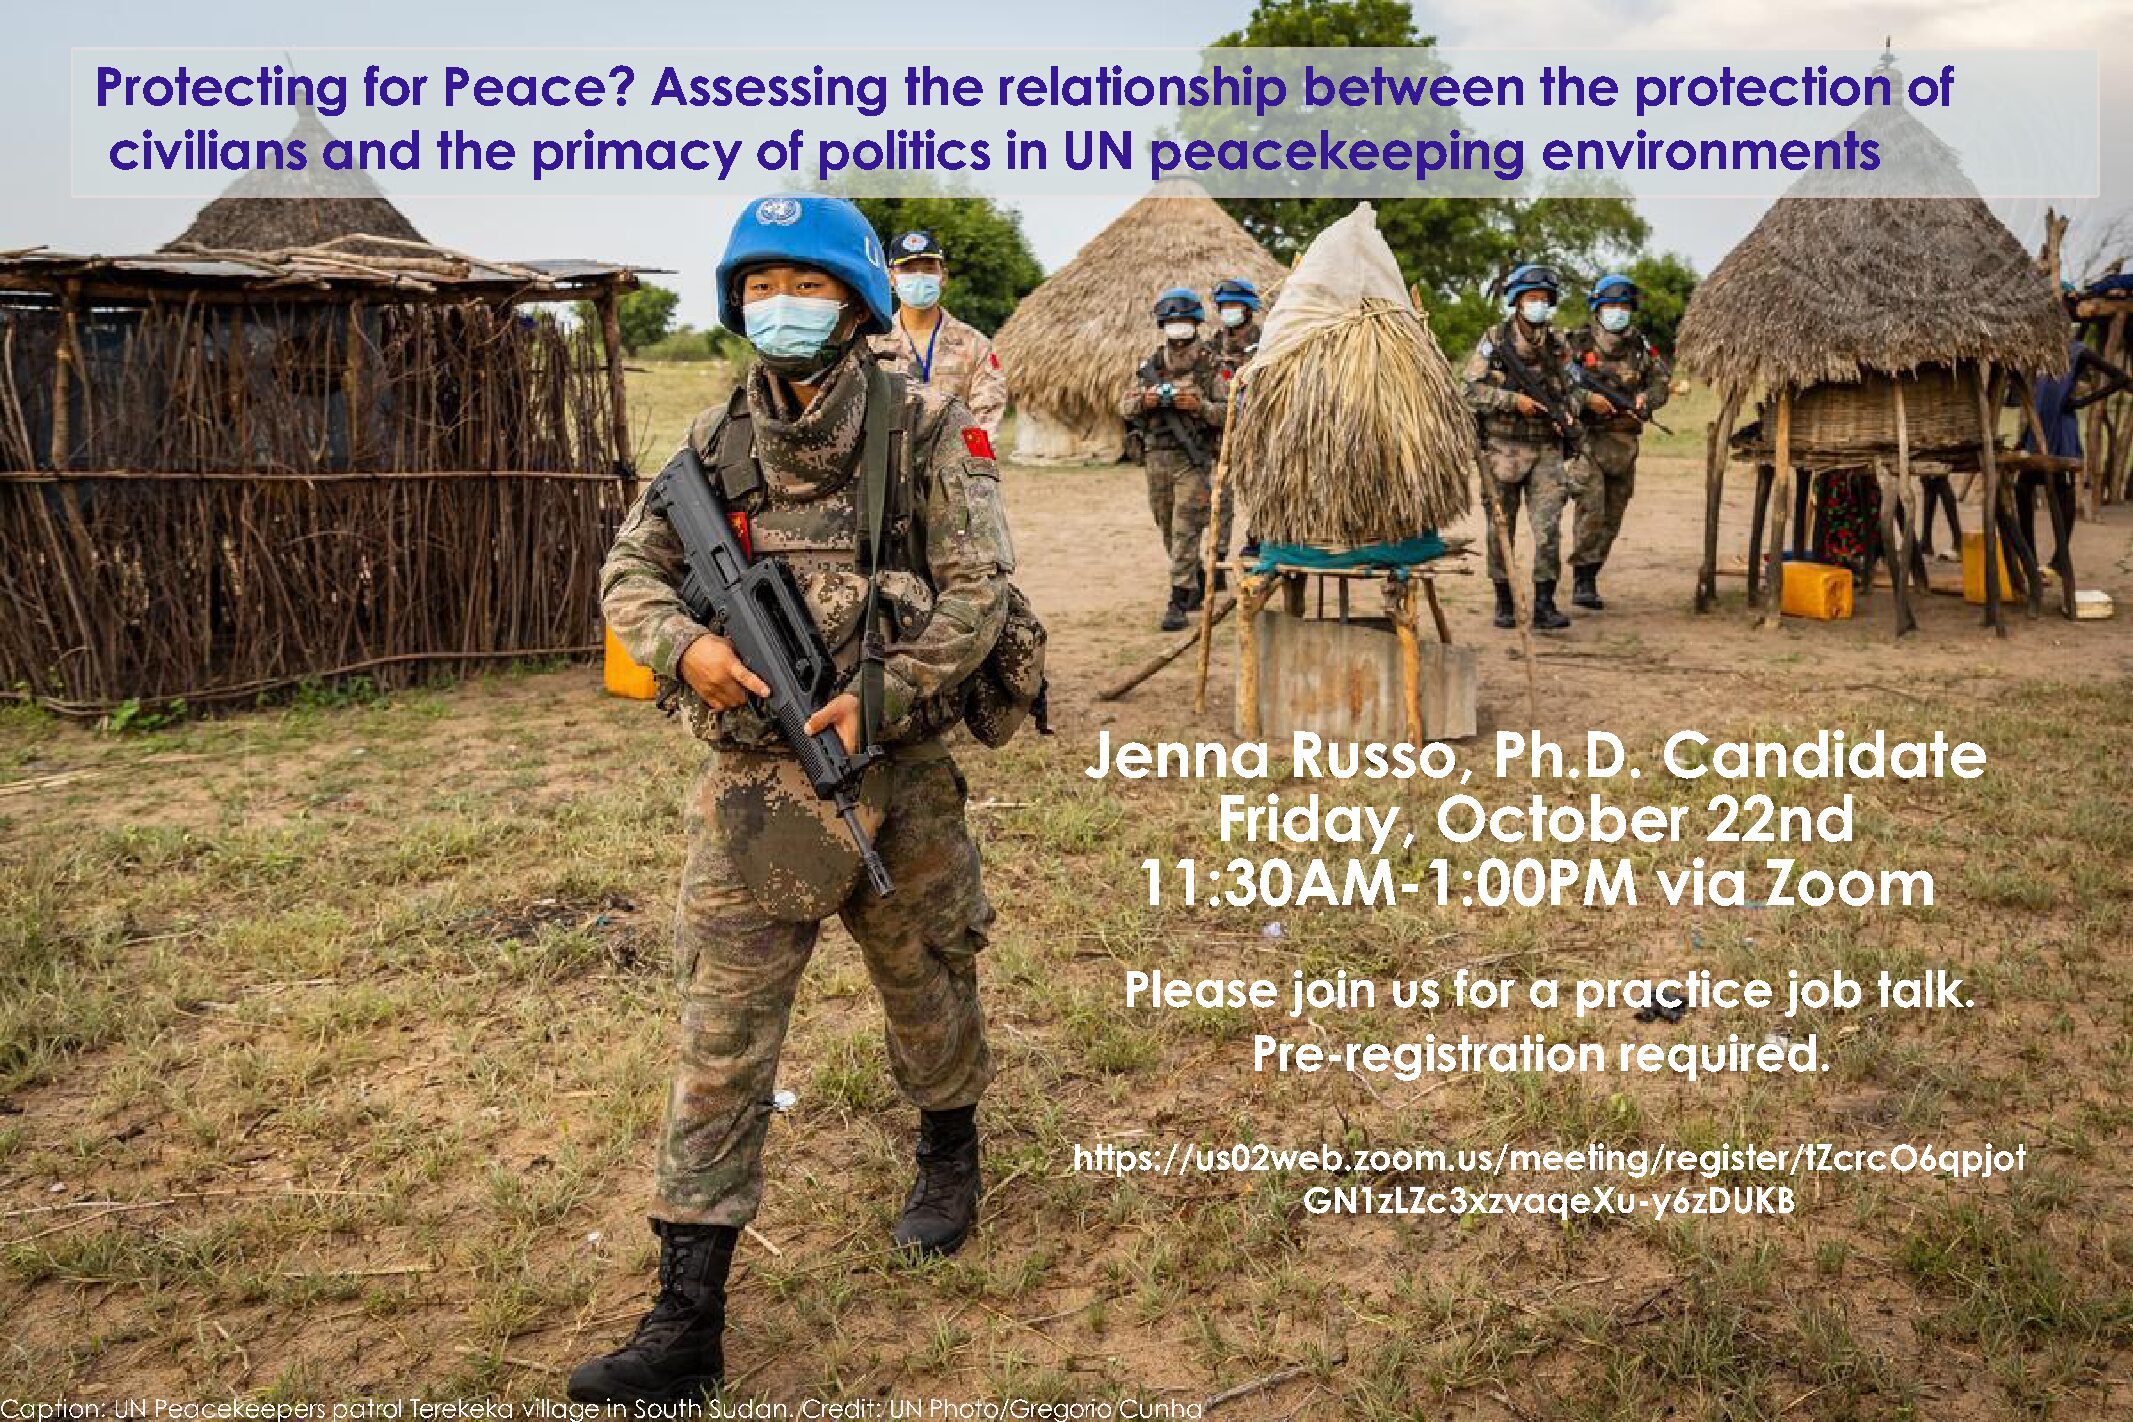 """Professional Development Workshop: Practice Job Talk, Jenna Russo, """"""""Protecting for Peace? Assessing the relationship between the protection of civilians and the primacy of politics in UN peacekeeping environments,"""" Friday, October 22, 11:30AM–1:00PM"""